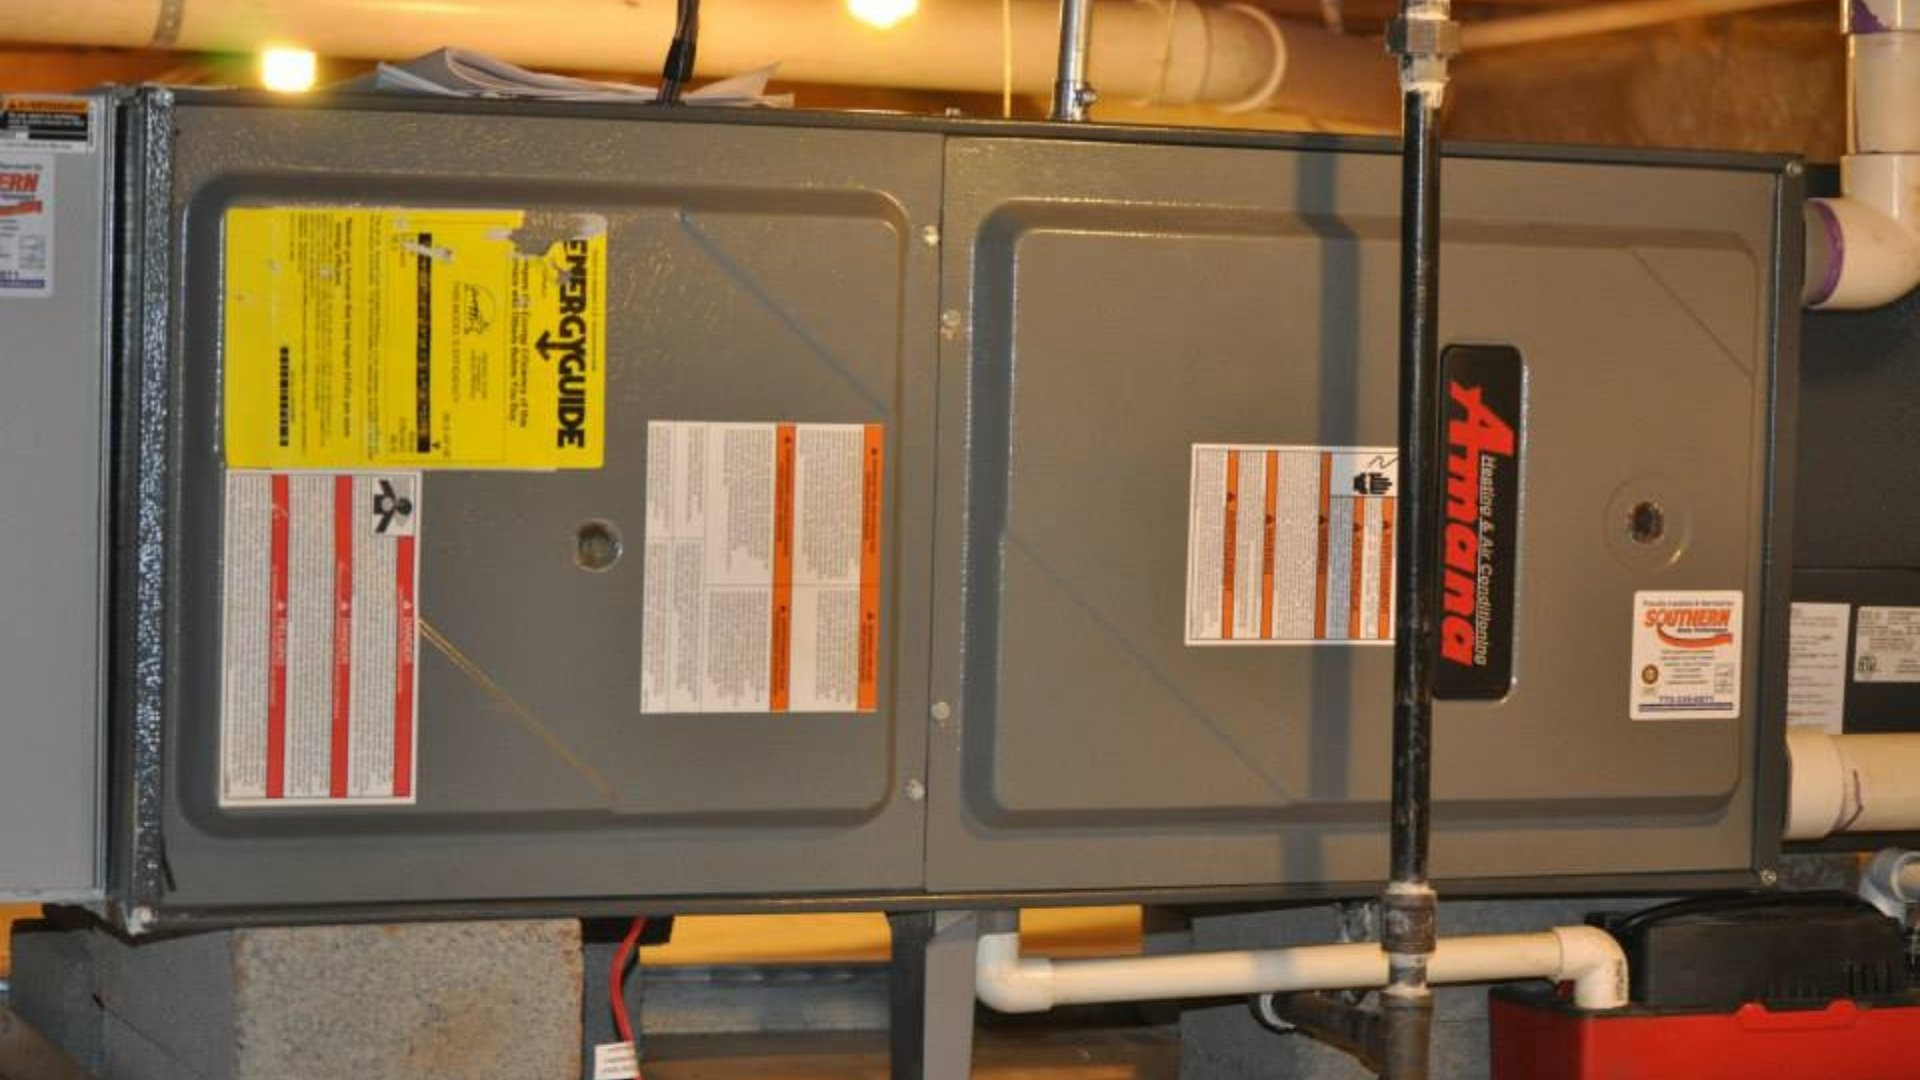 Furnace Installation in Attic - Heating Page Gallery